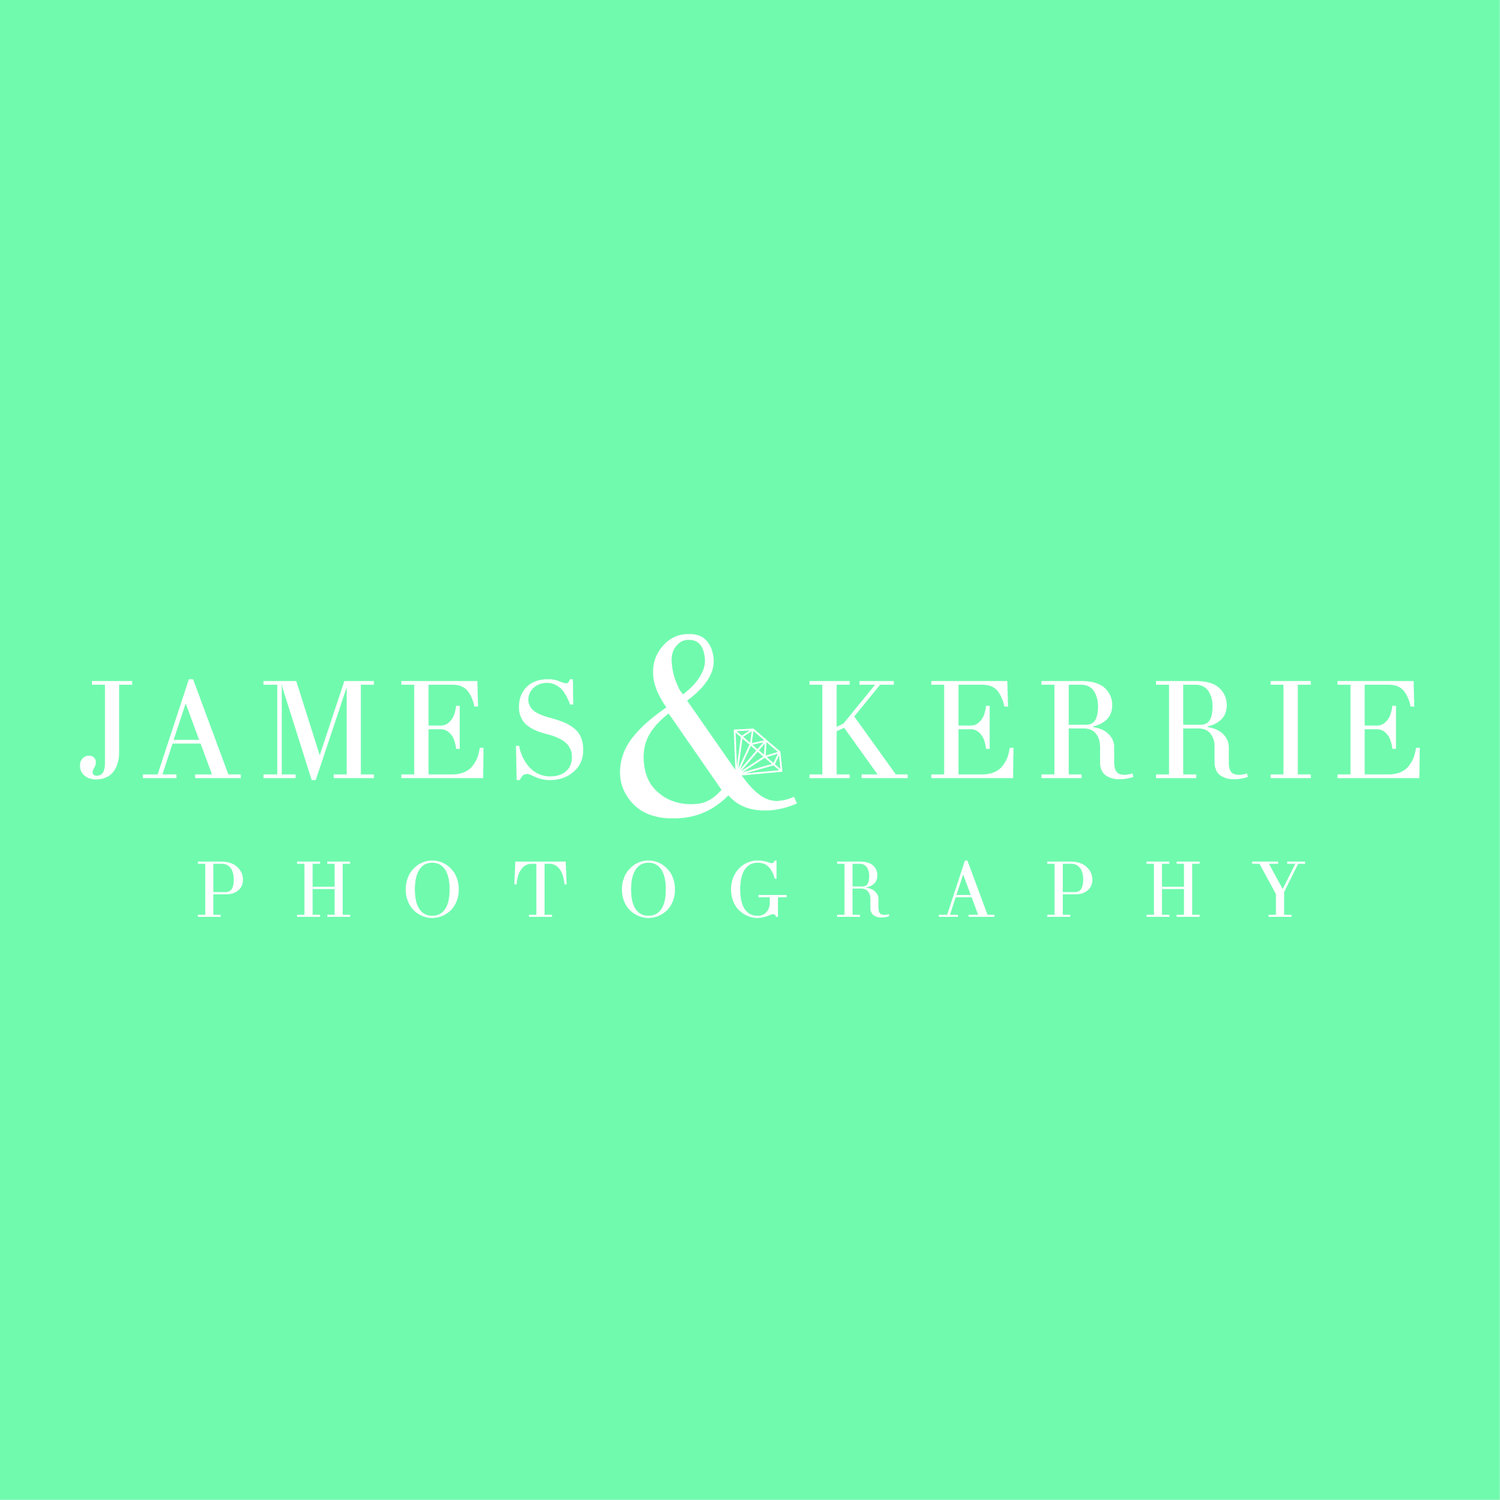 Somerset Wedding Photographer | Somerset Wedding photographers | James & Kerrie Photography